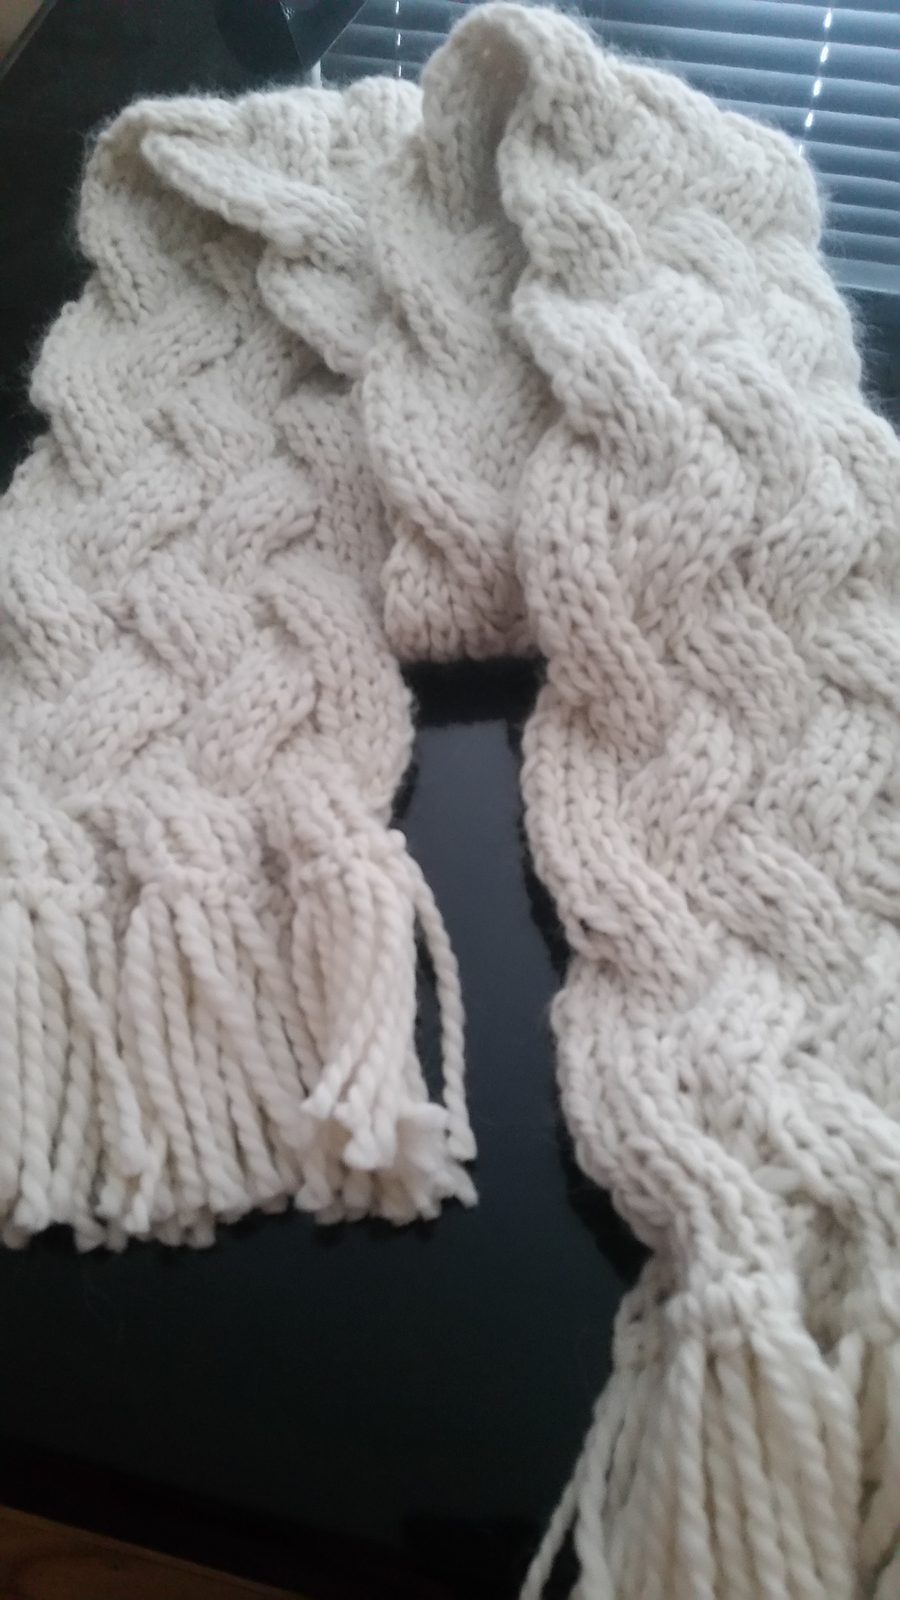 Reversible Cable Knitting Patterns | Tejido, Trenza y Puntadas